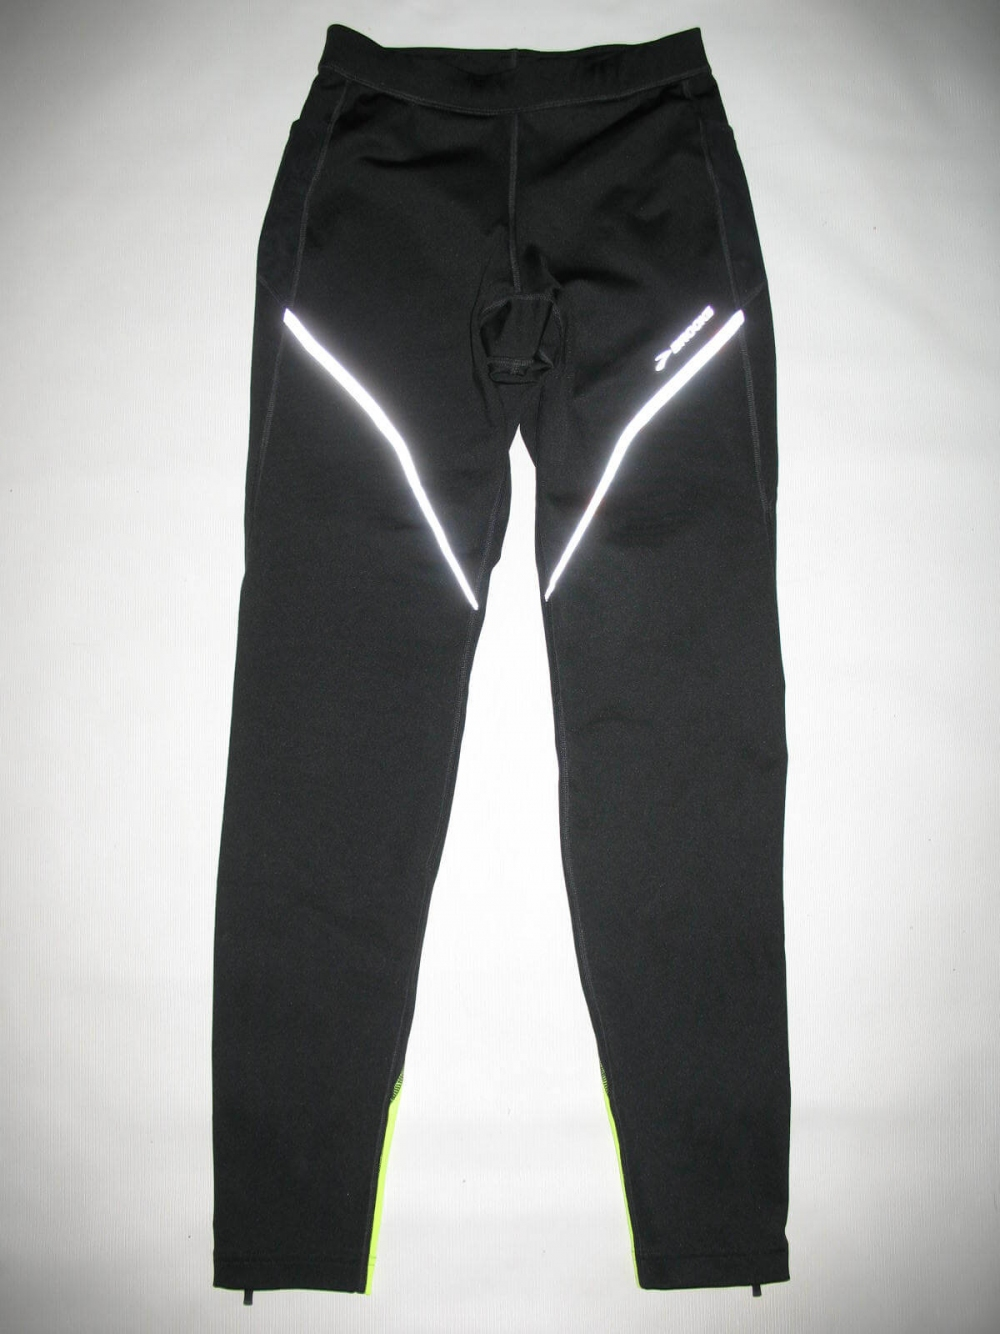 Штаны BROOKS infiniti runners tights (размер S) - 3